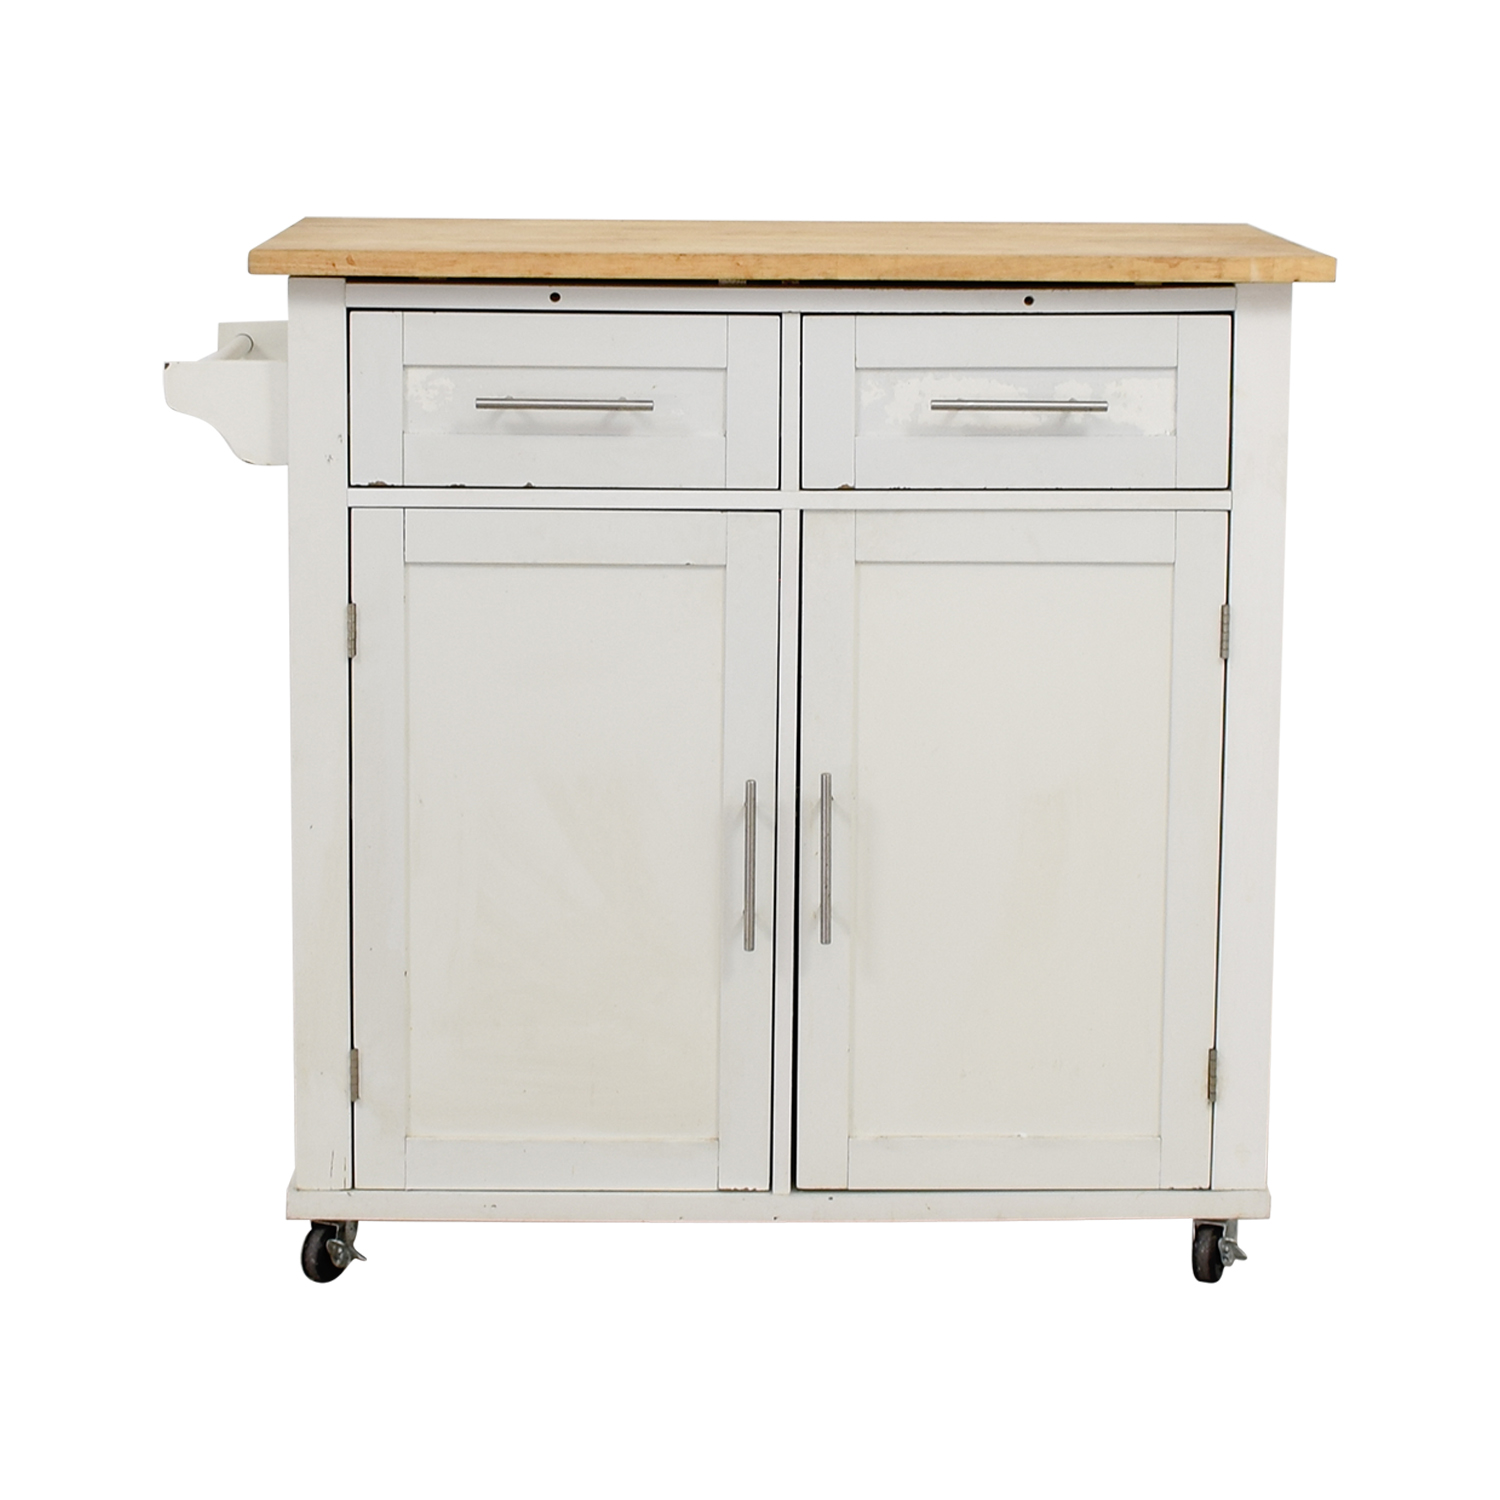 62% OFF - IKEA IKEA Varde Kitchen Butcher Block Island with Storage / Tables